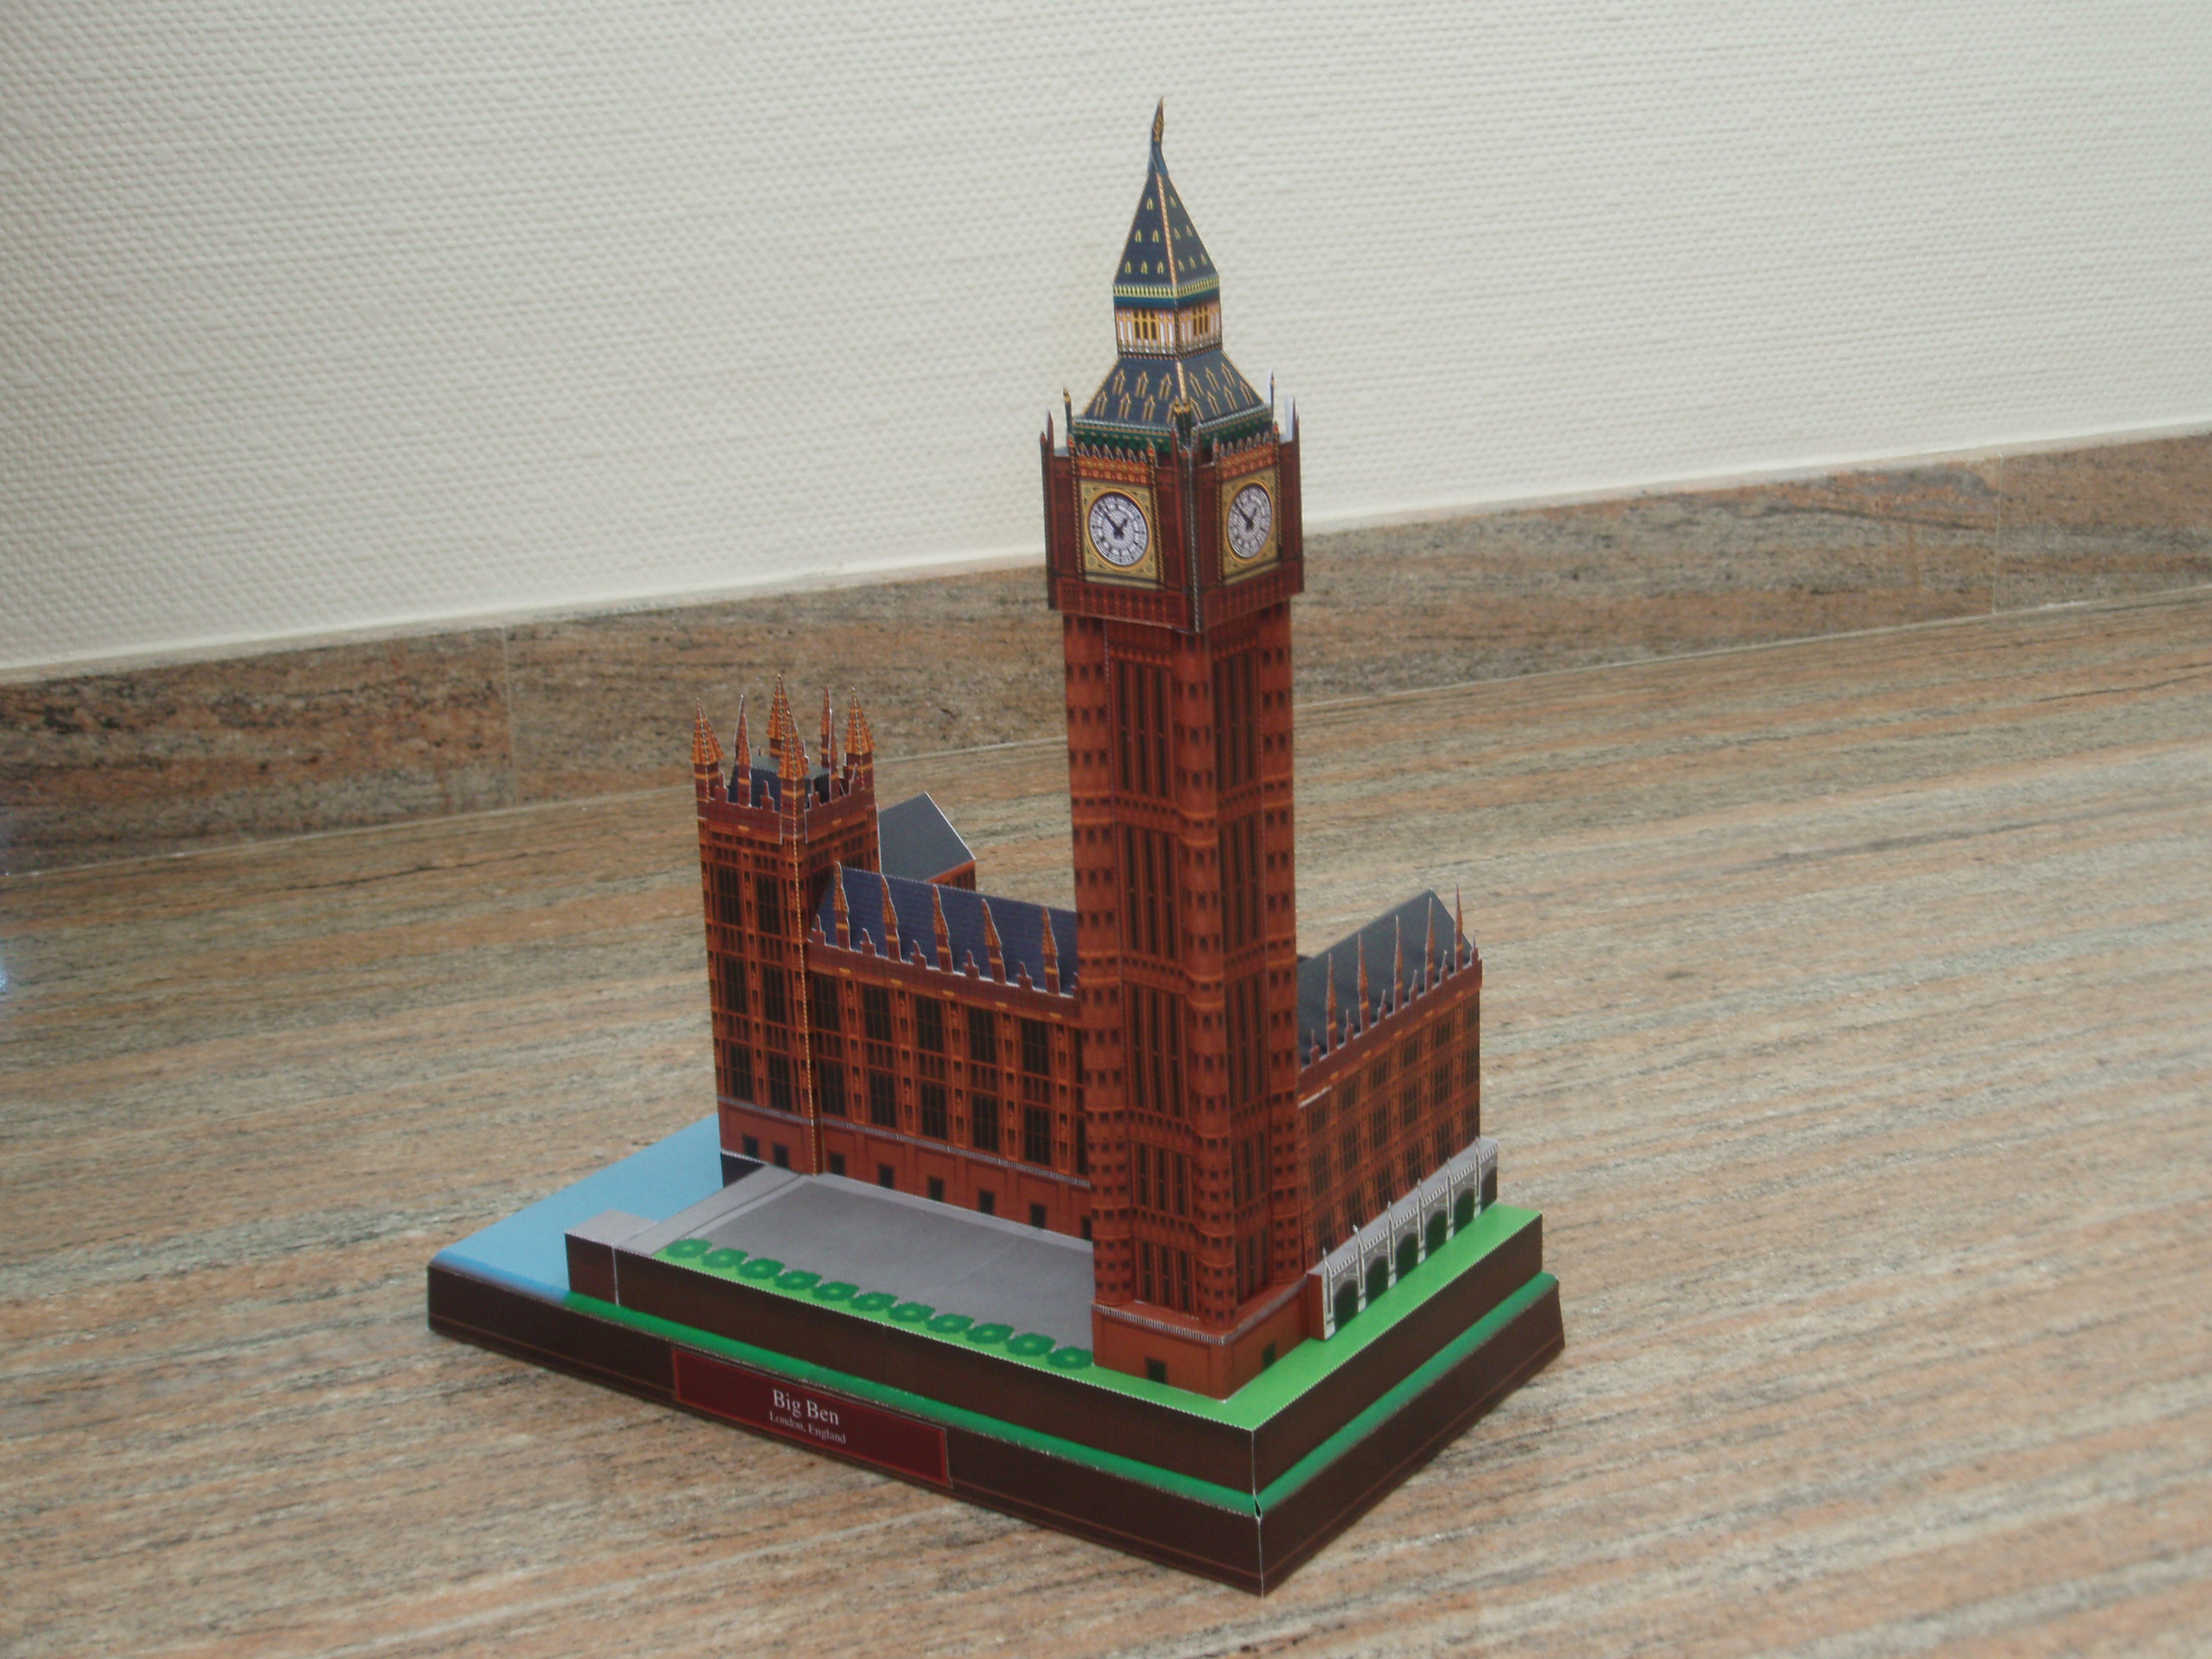 Papercraft building - London - Big Ben.